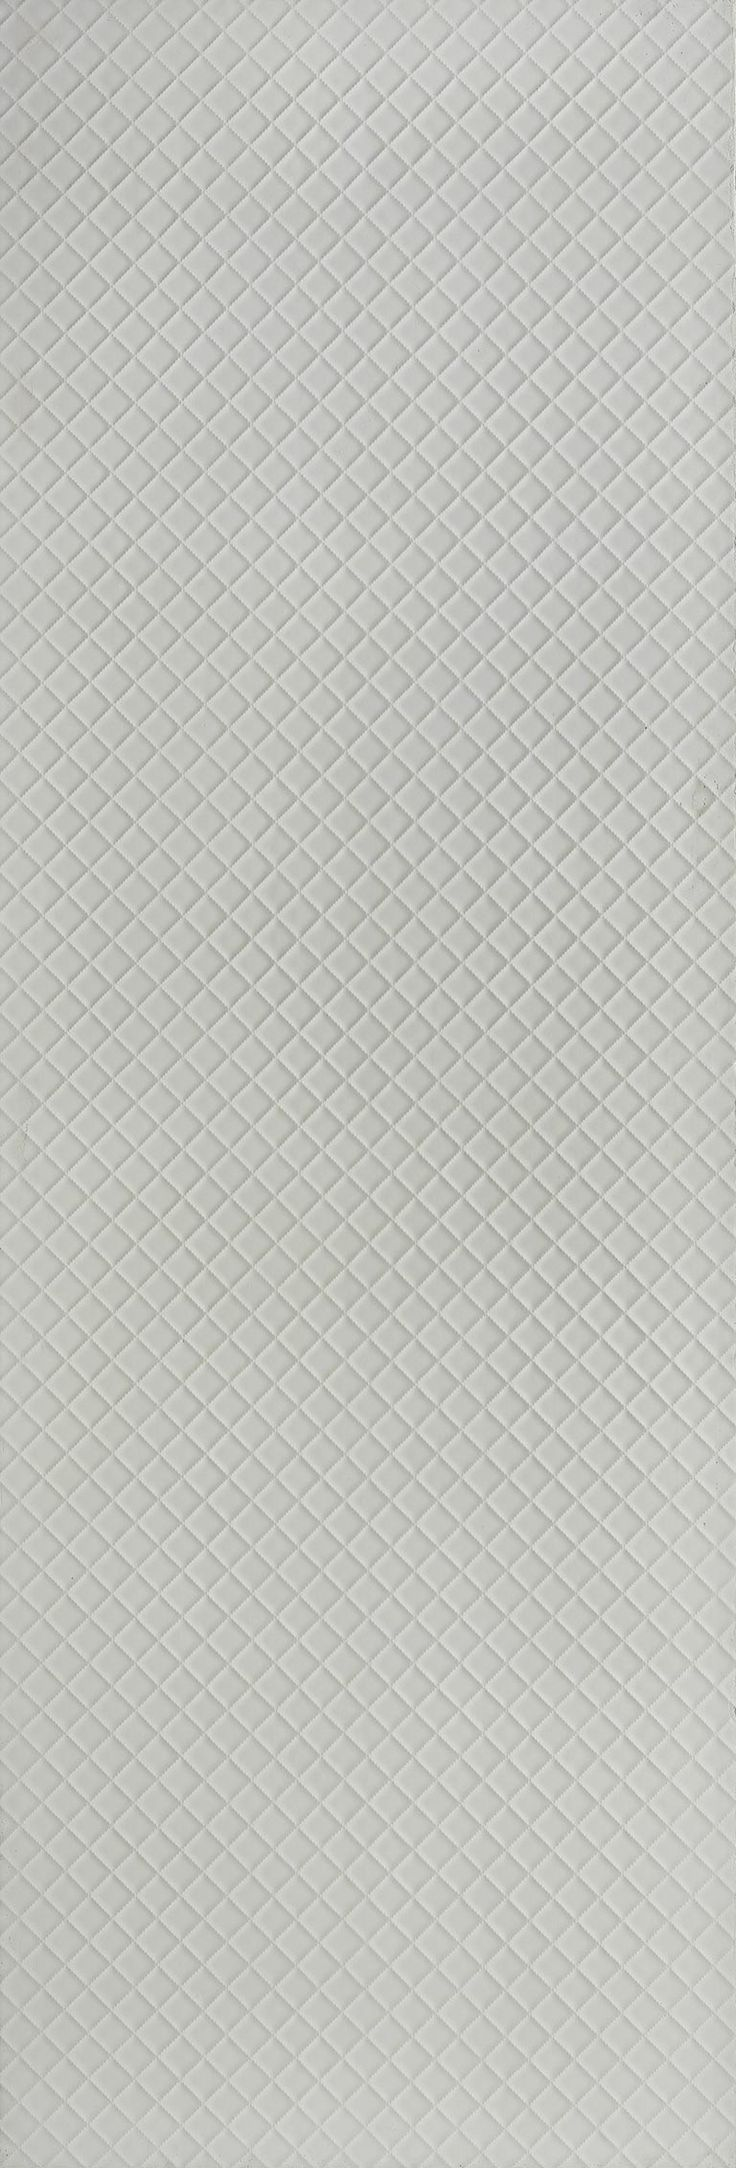 panbeton france concrete wall panels capiton quilted